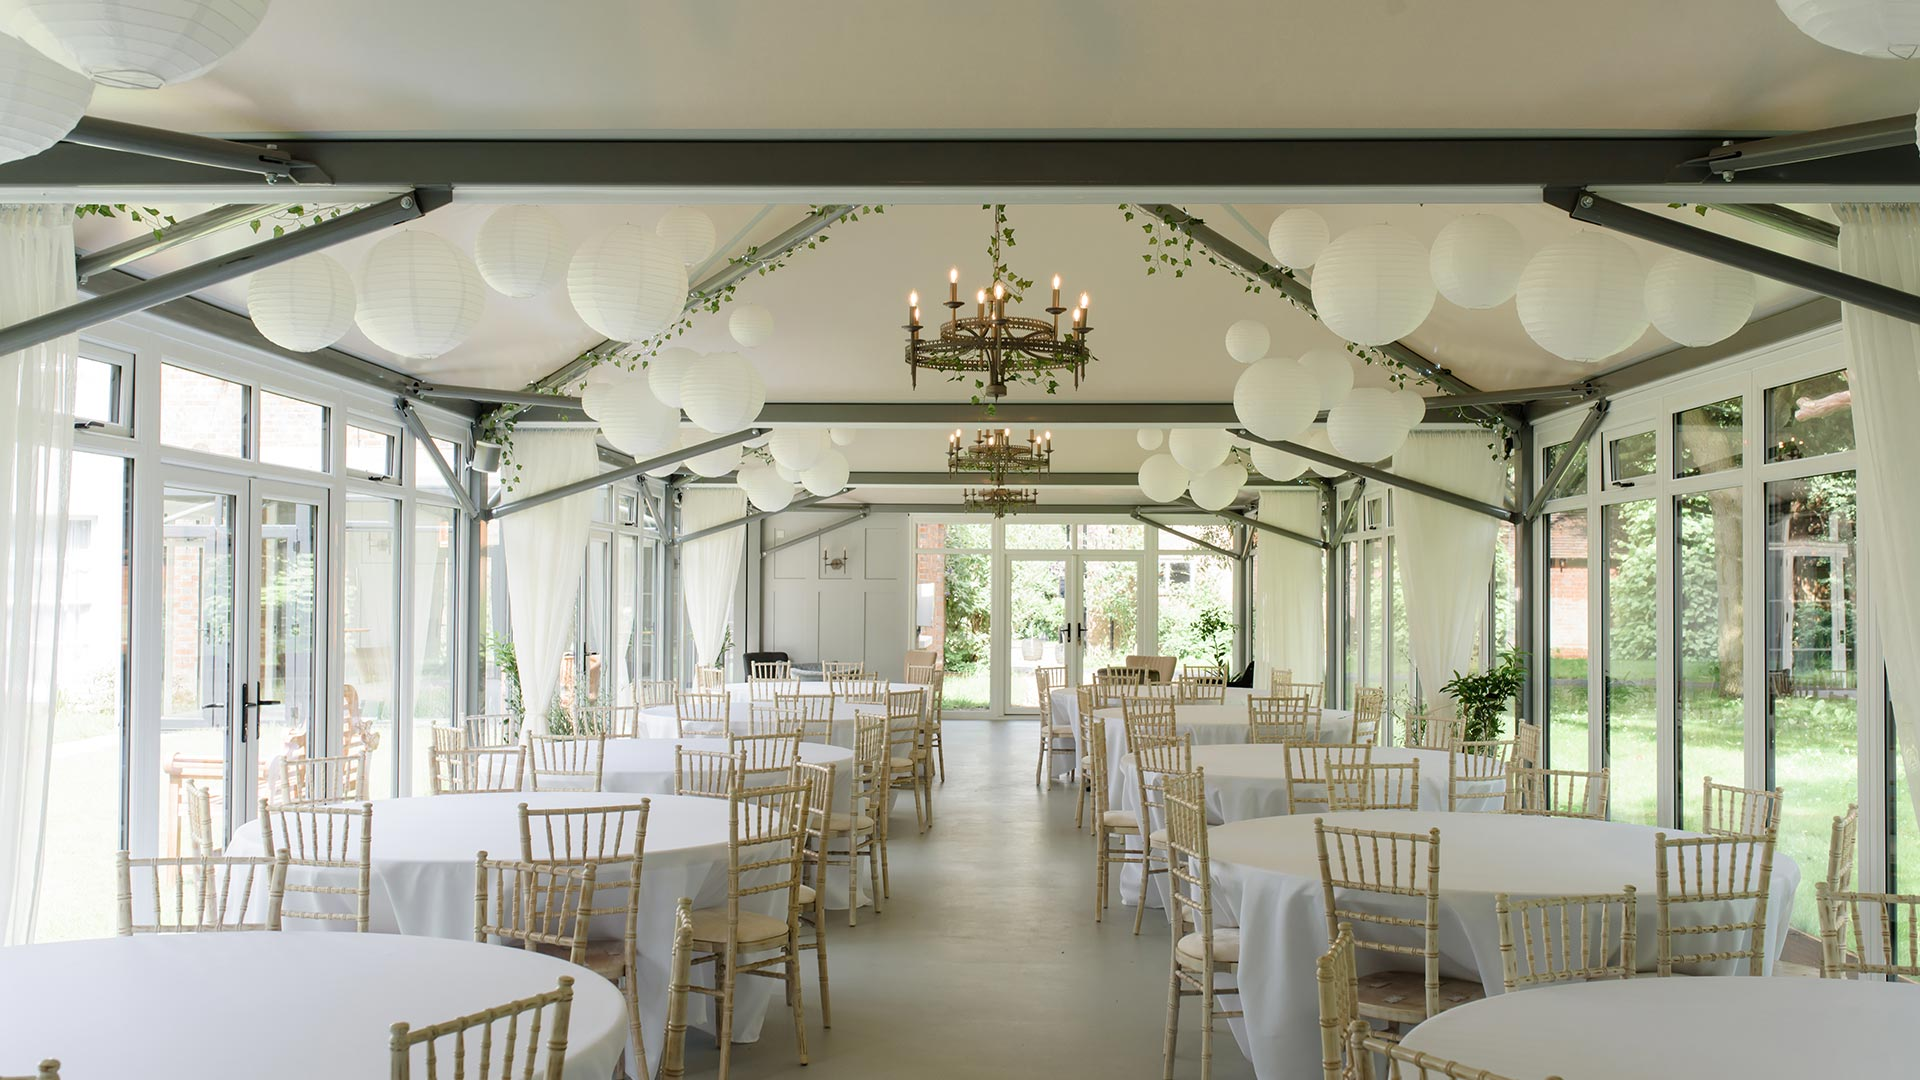 Seats-up-to-140-guests-Rectory